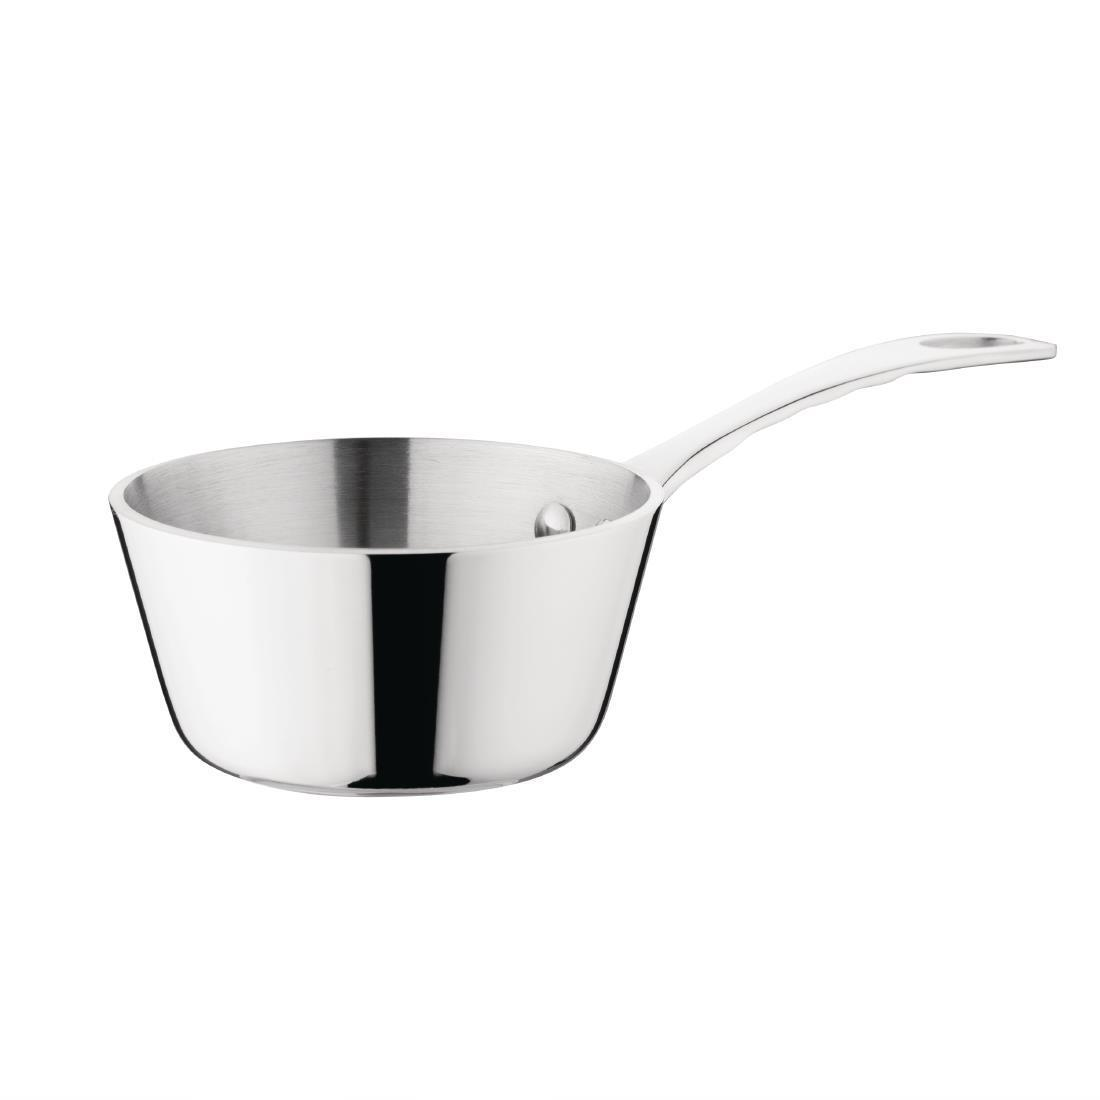 Vogue Mini Tri Wall Saute Pan 85mm - Each - GG760